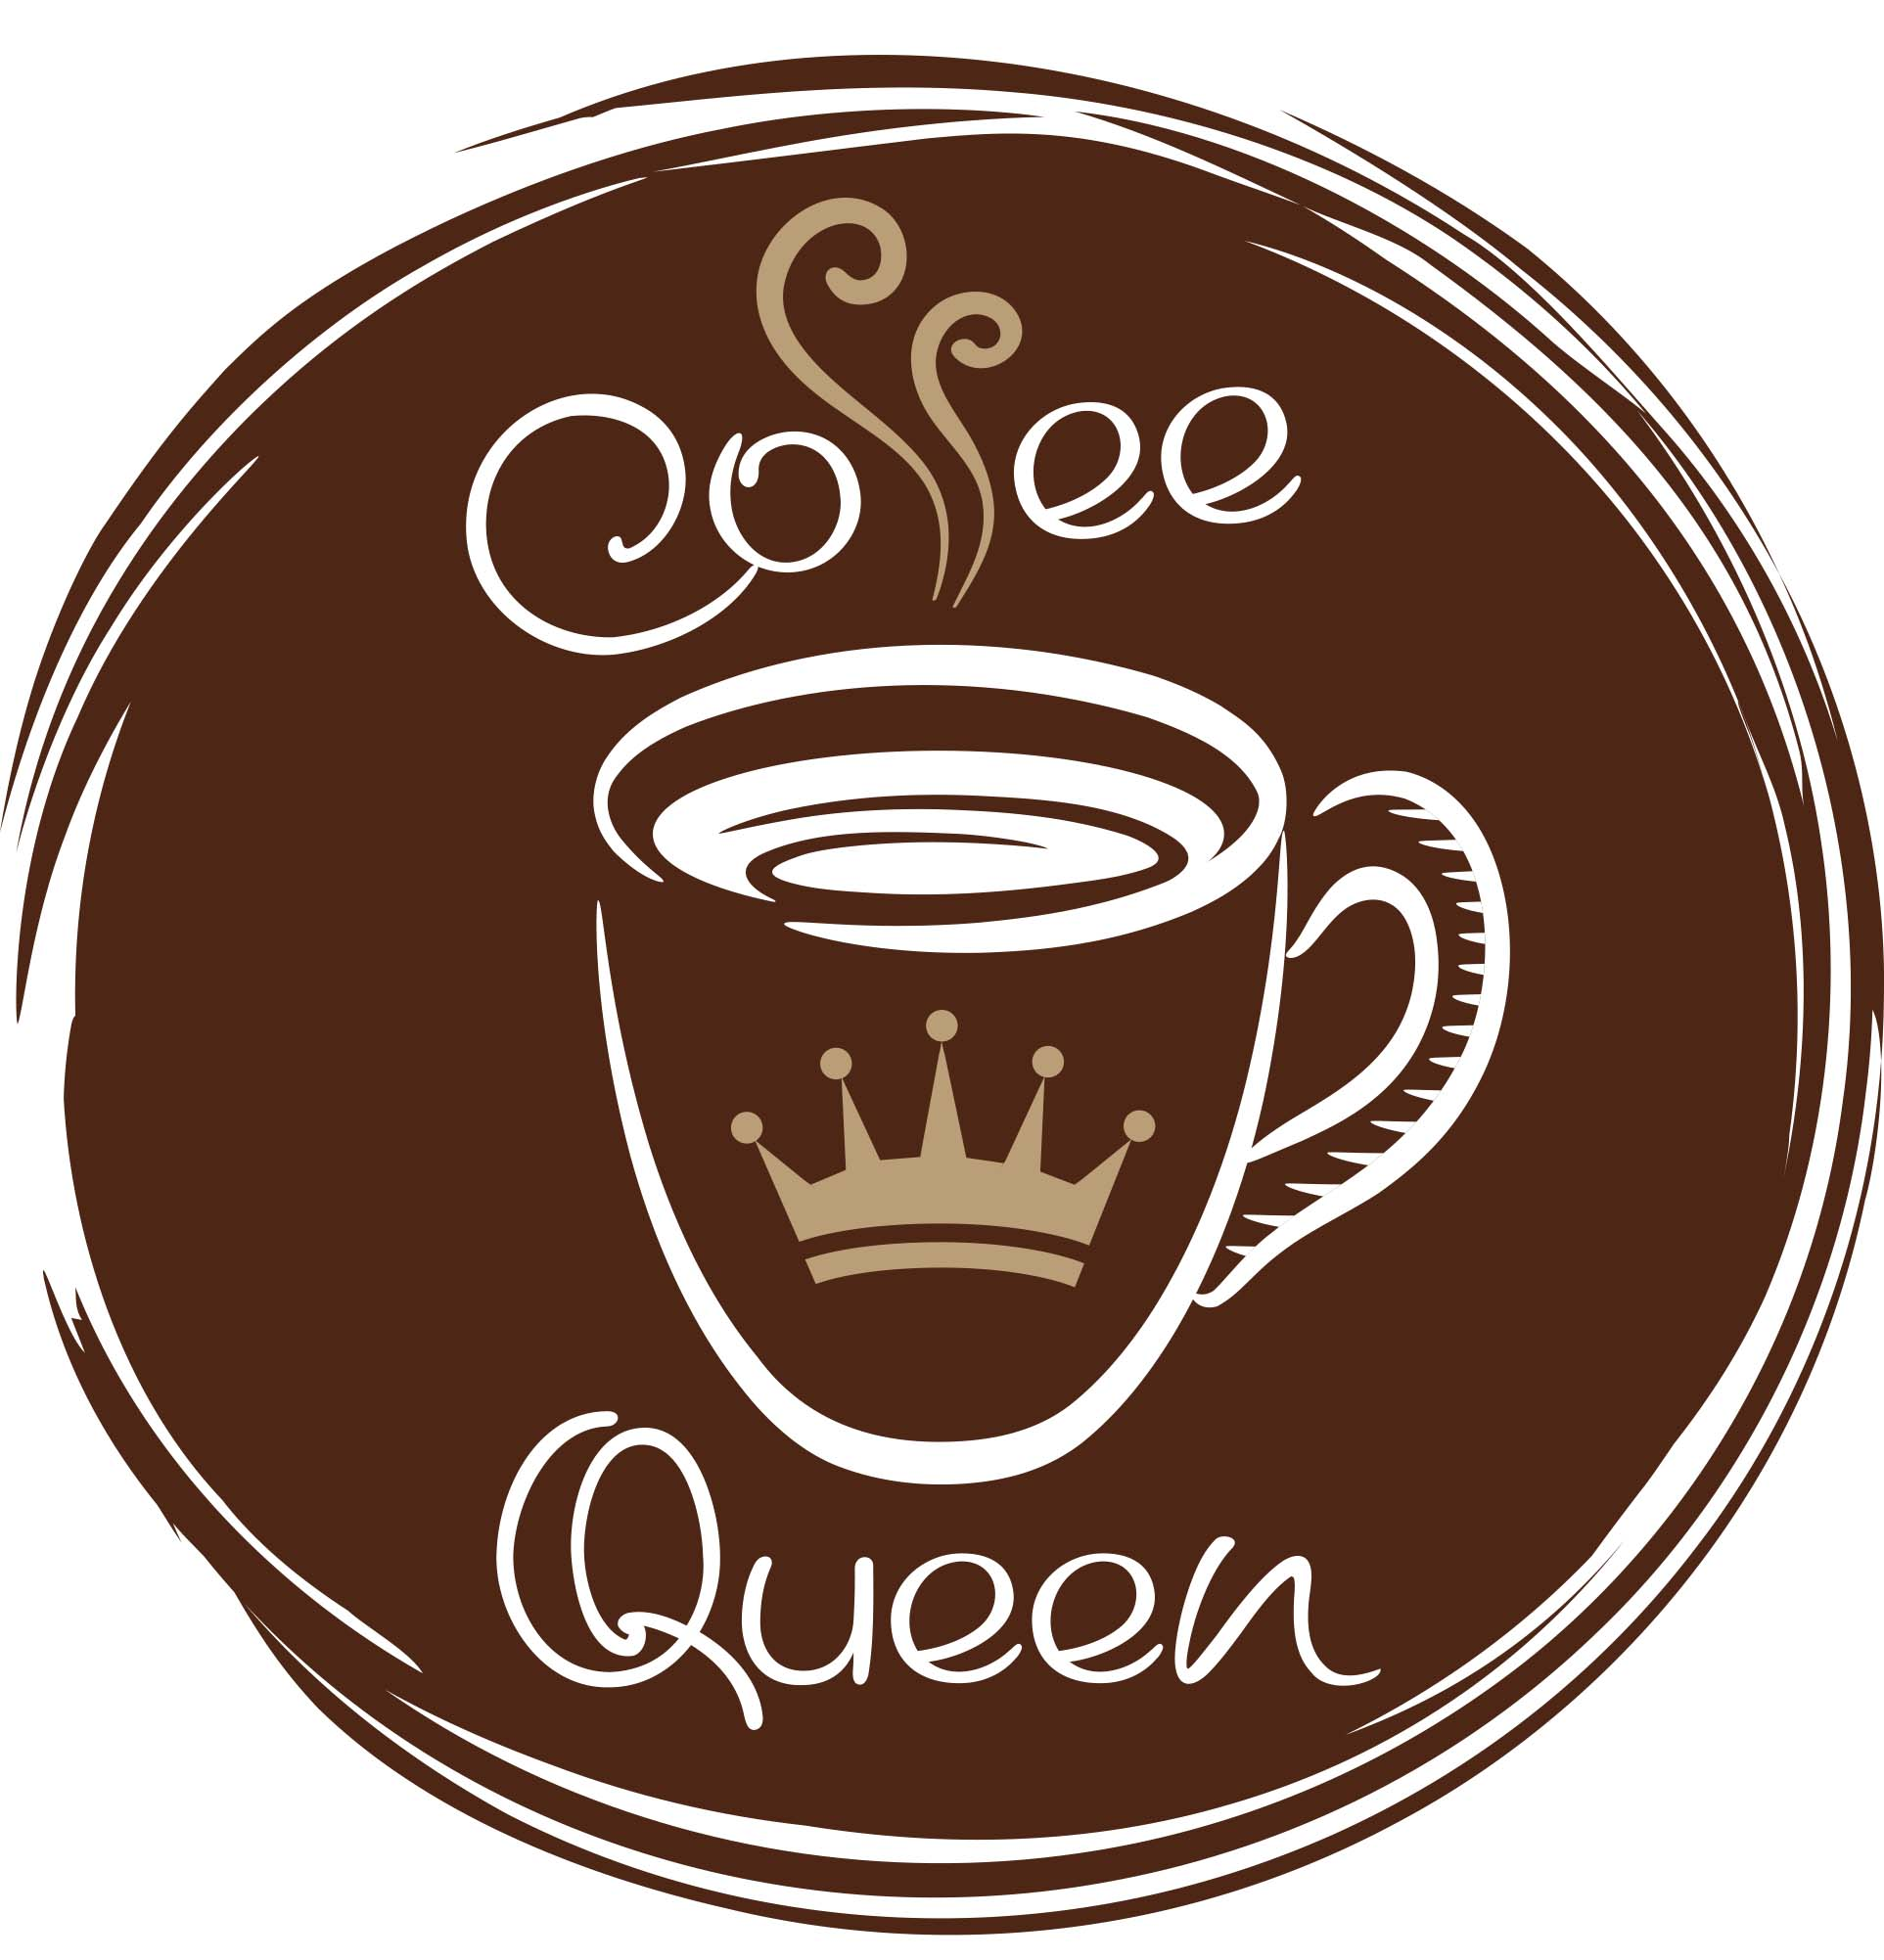 Coffe Queen Brown logo